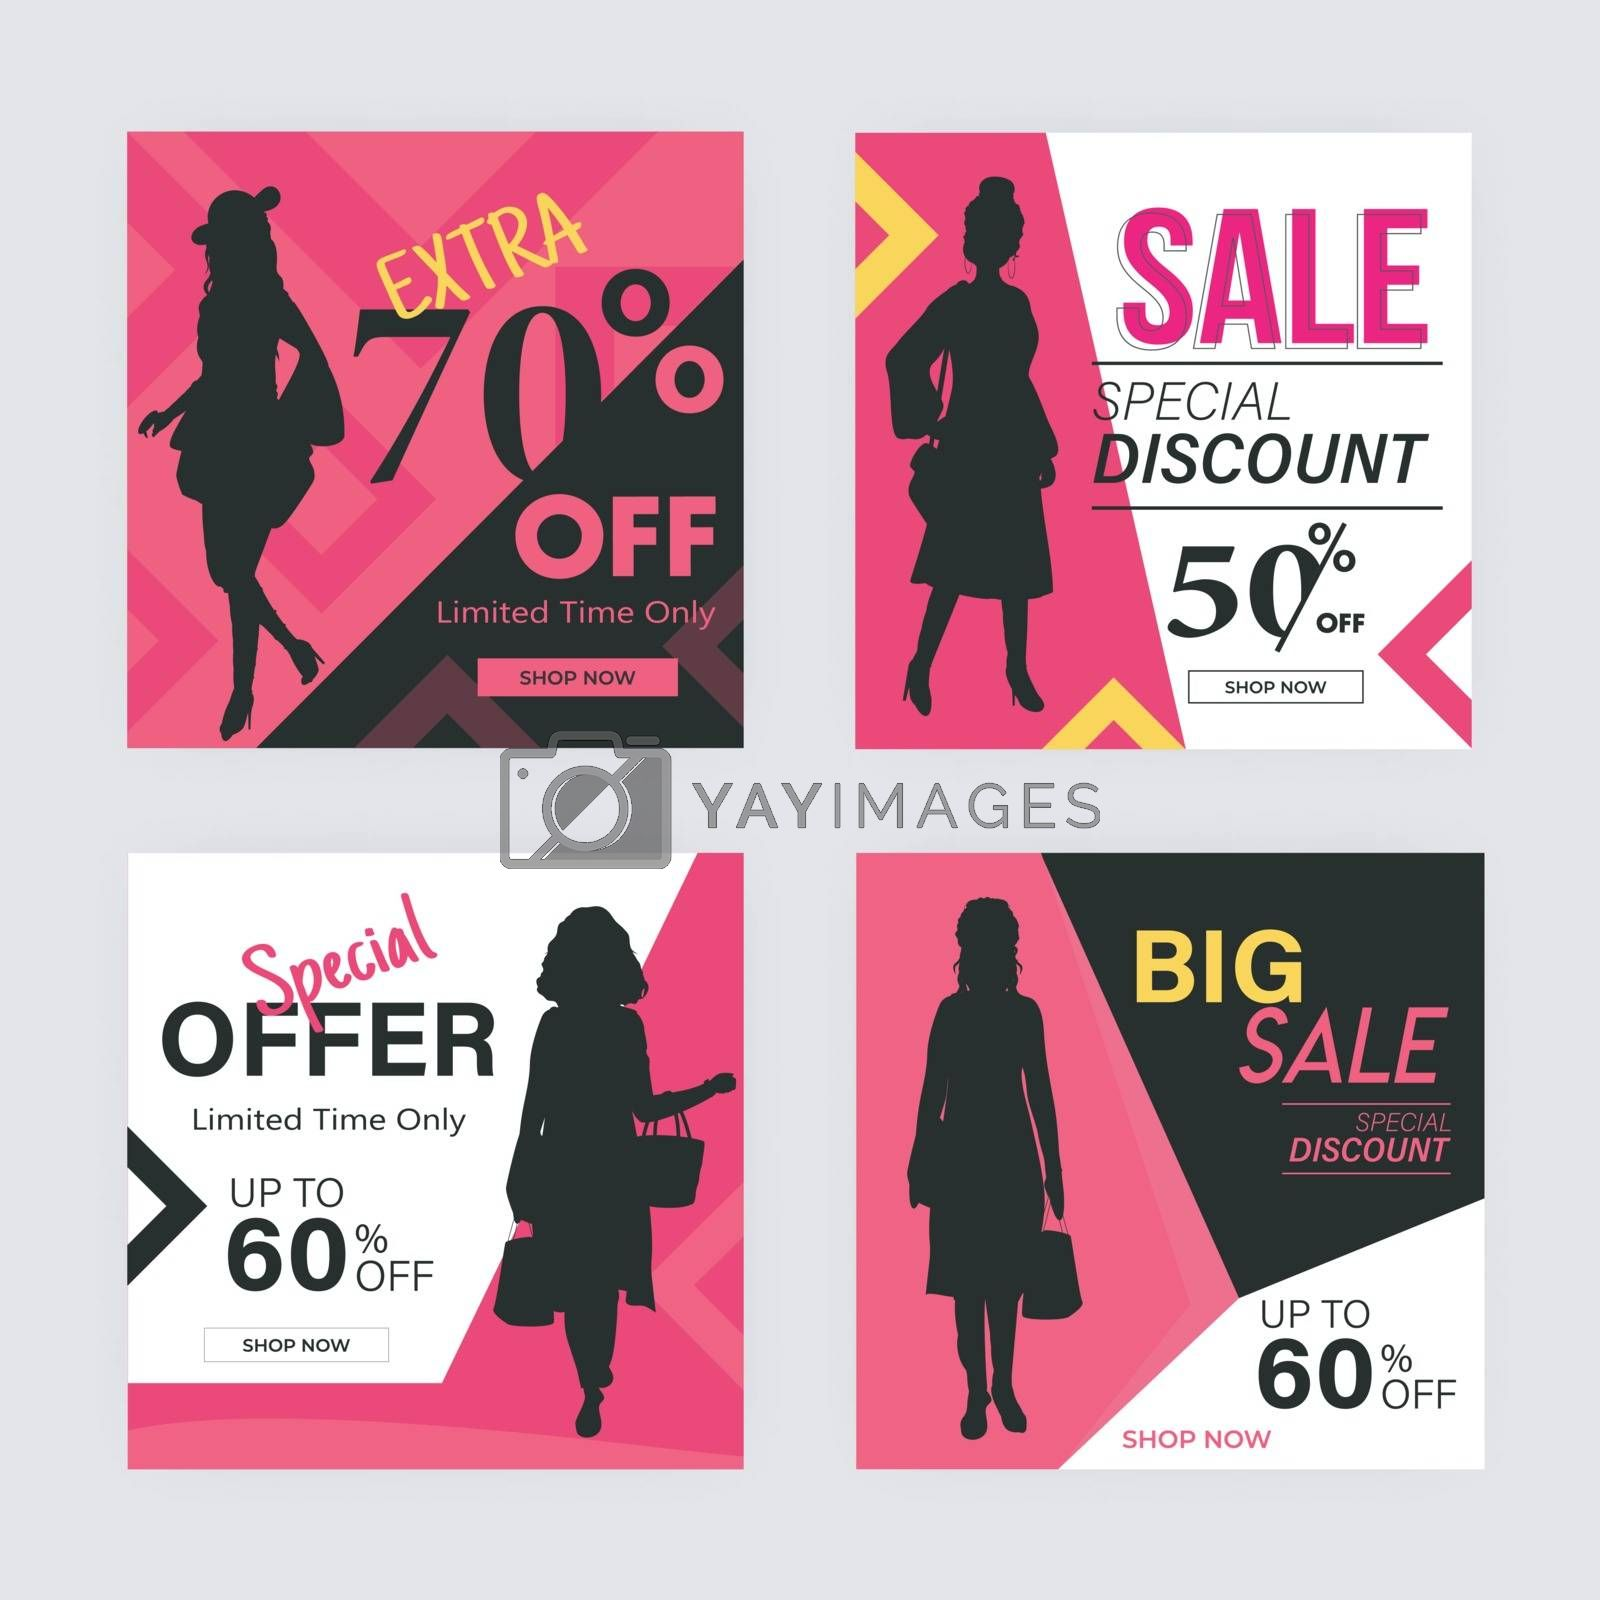 Royalty free image of Big Sale template or poster set with different discount offers. by aispl